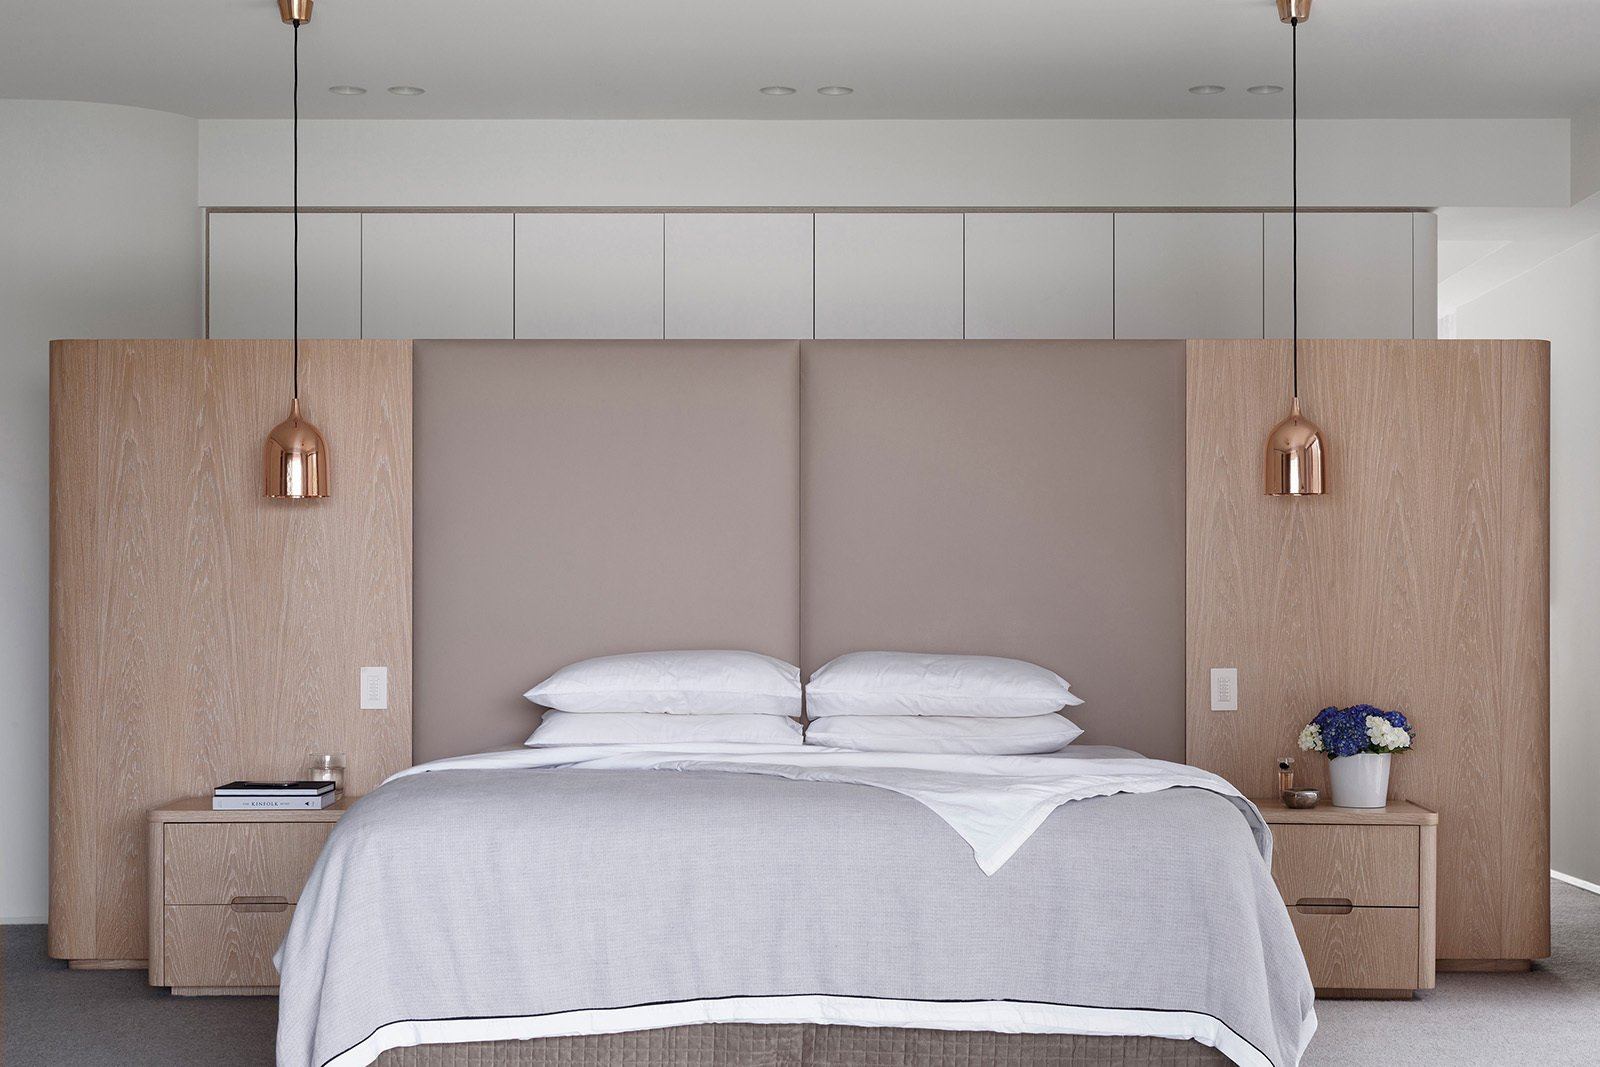 Bedroom Overhead Lighting Ideas 50 Bedroom Lighting Ideas For Your Ceilings Dwell